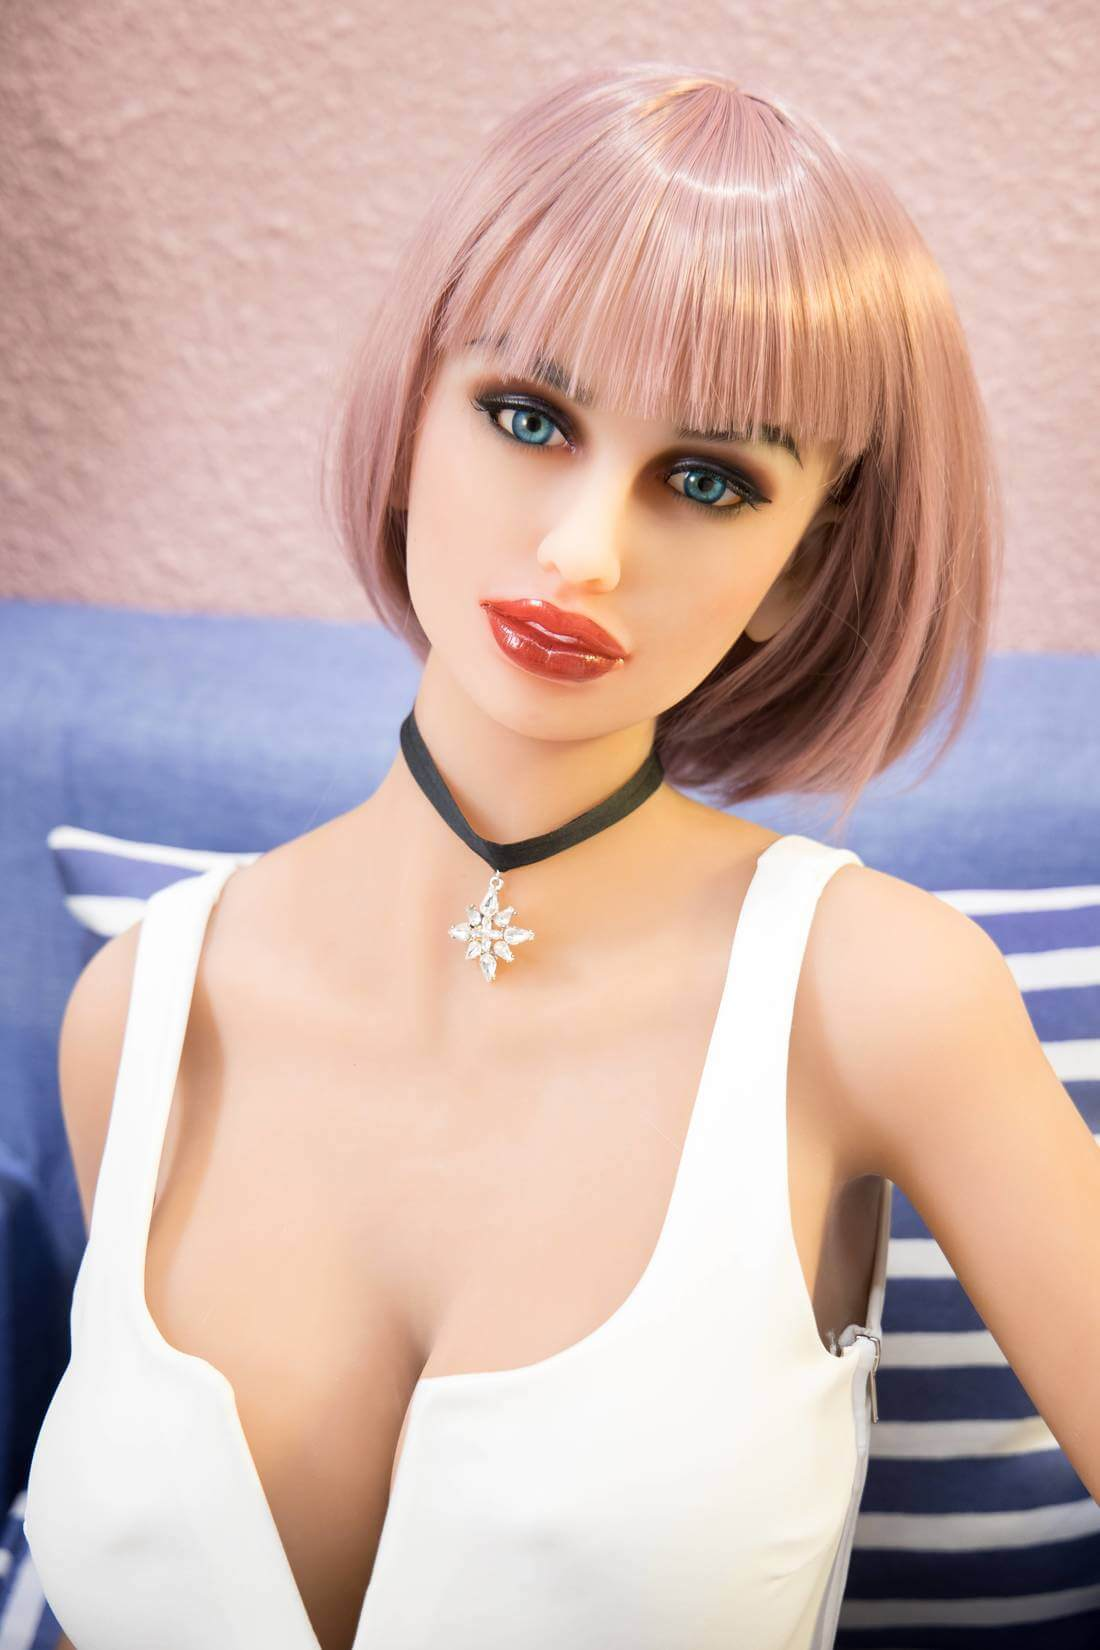 Short Hair Sex Doll - Ingrid